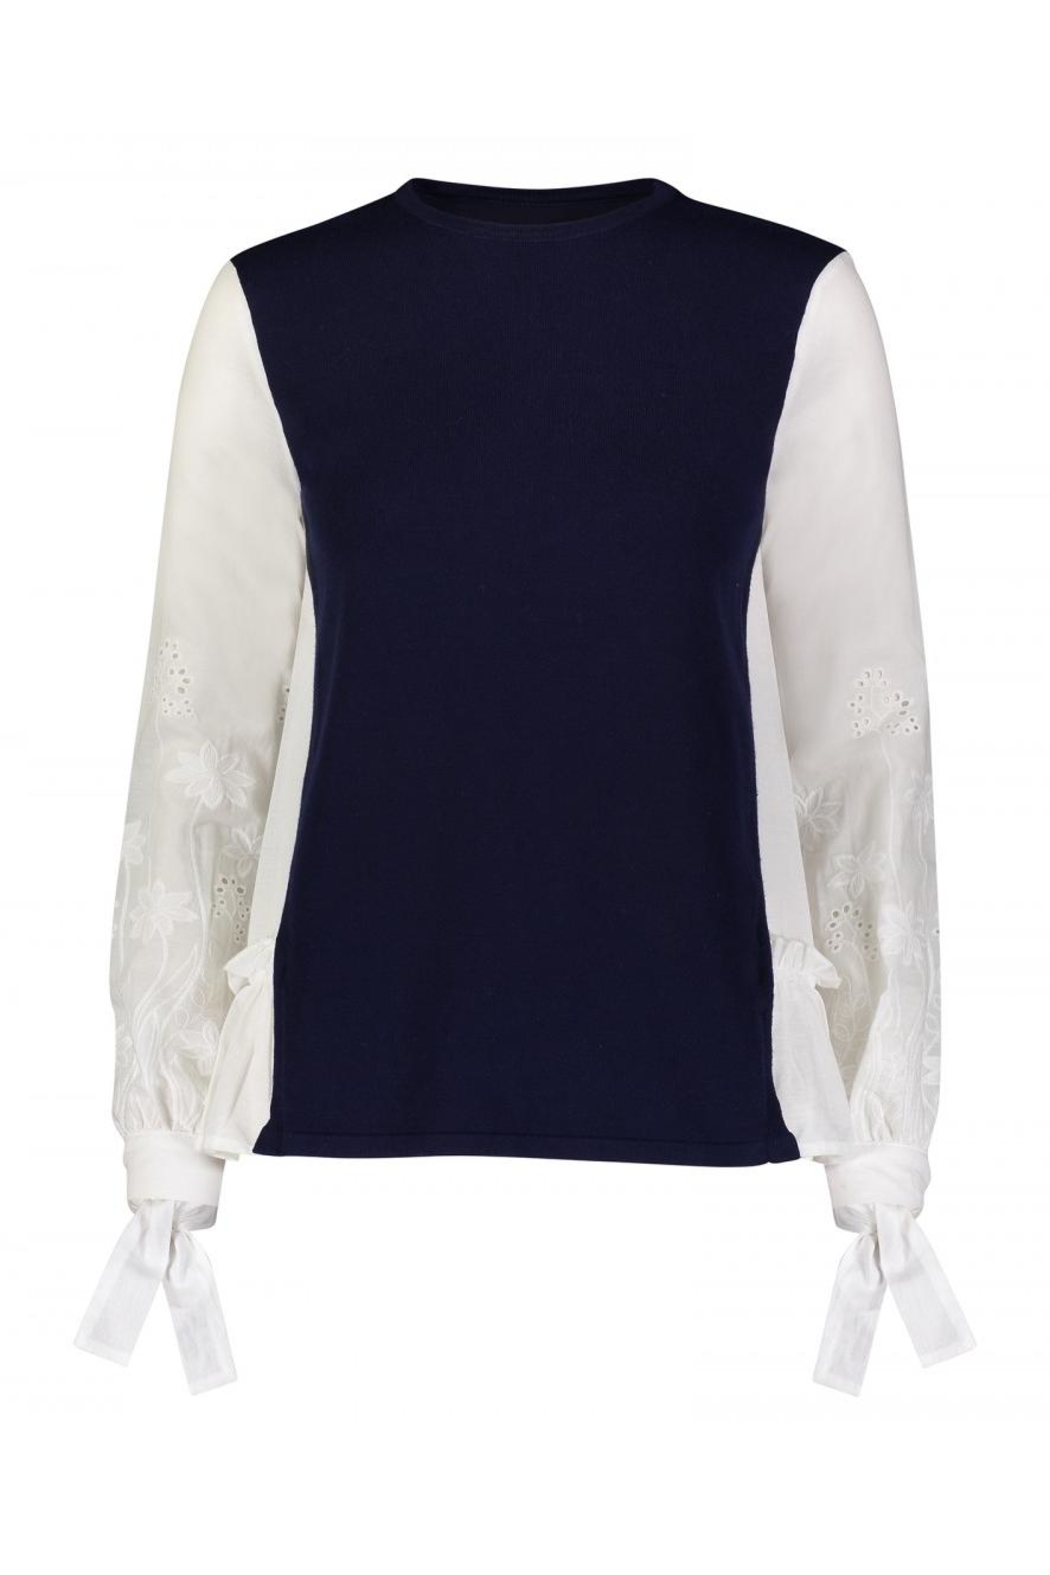 Yal NY Bow Embroidered Sleeve - Front Cropped Image